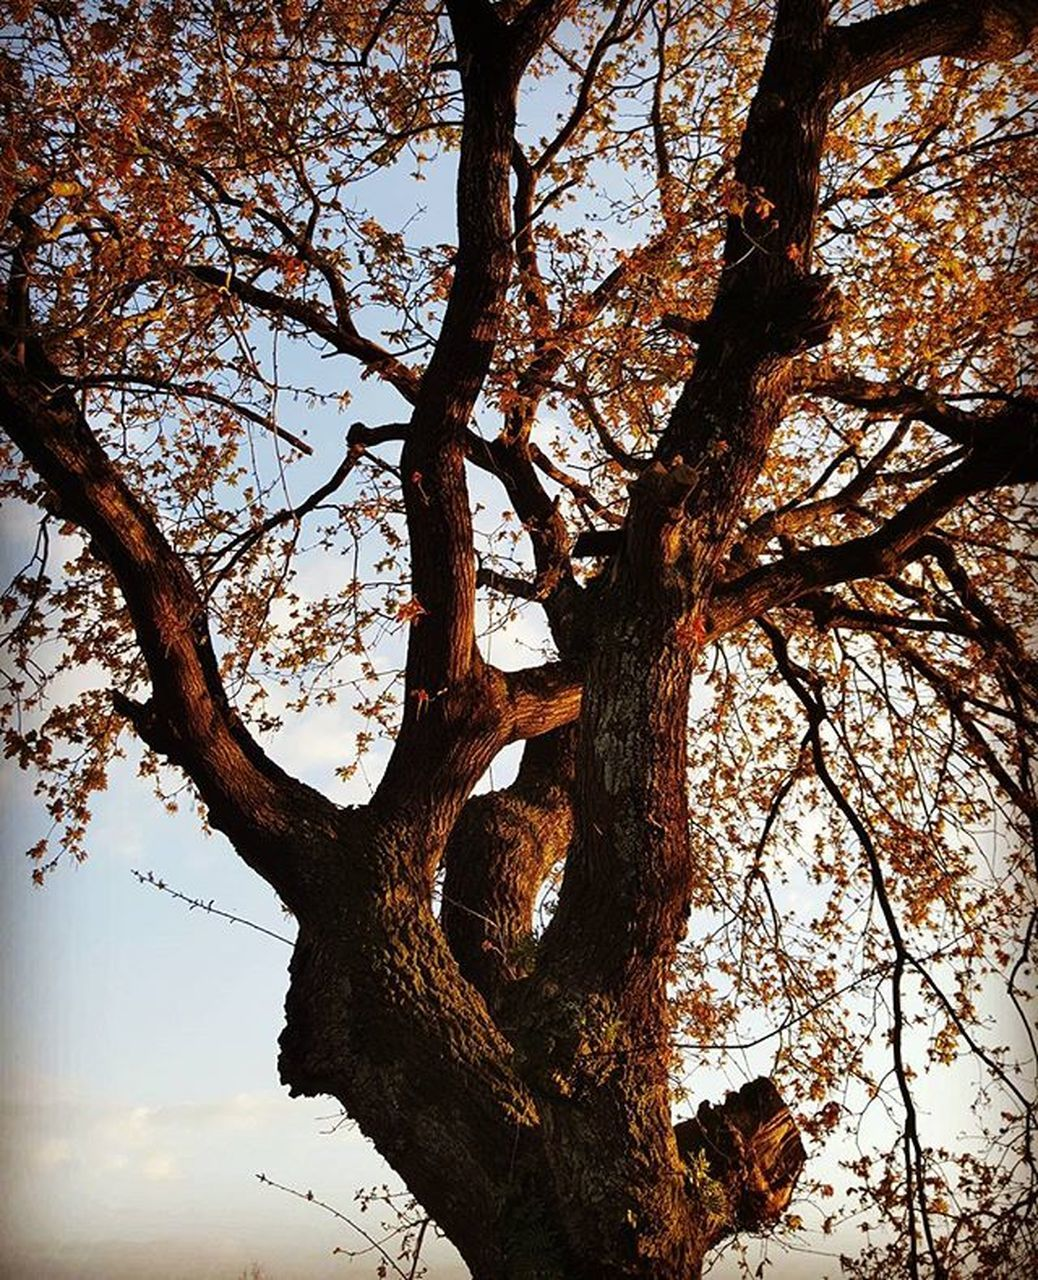 tree, tree trunk, branch, nature, growth, tranquility, beauty in nature, outdoors, no people, day, low angle view, scenics, sky